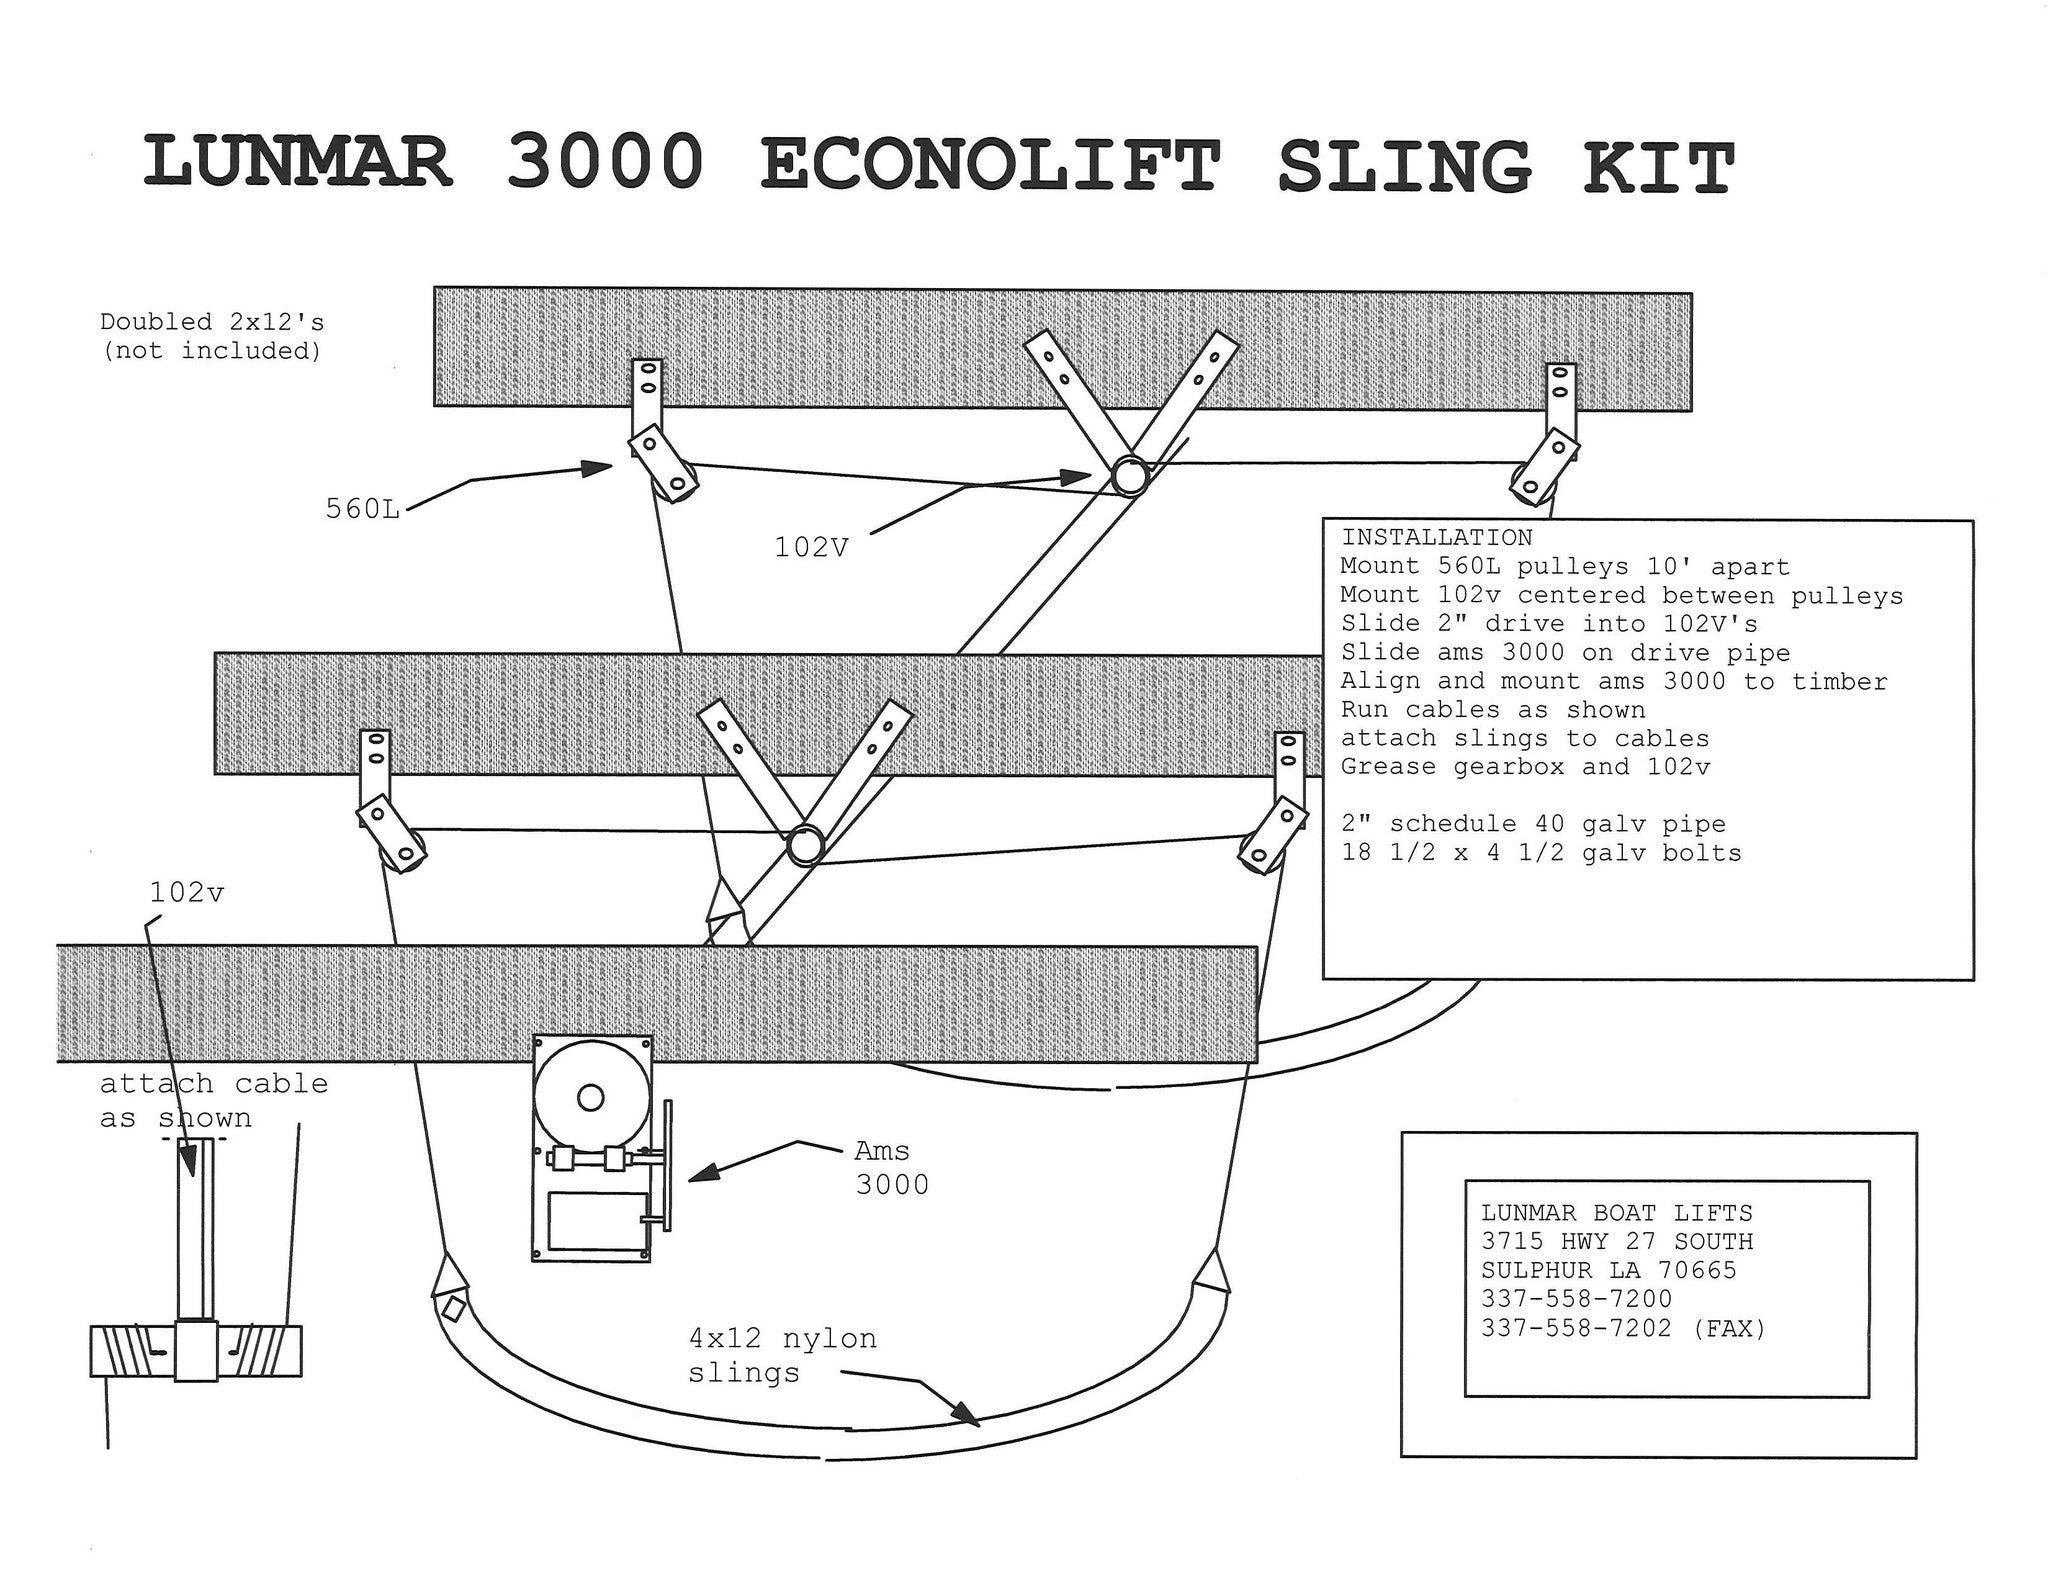 Bremas Boat Lift Switch Wiring Diagram 38 Images Motor Diagrams 3000 Econo Installation Diagramv1386003822 Cradle Single Phase